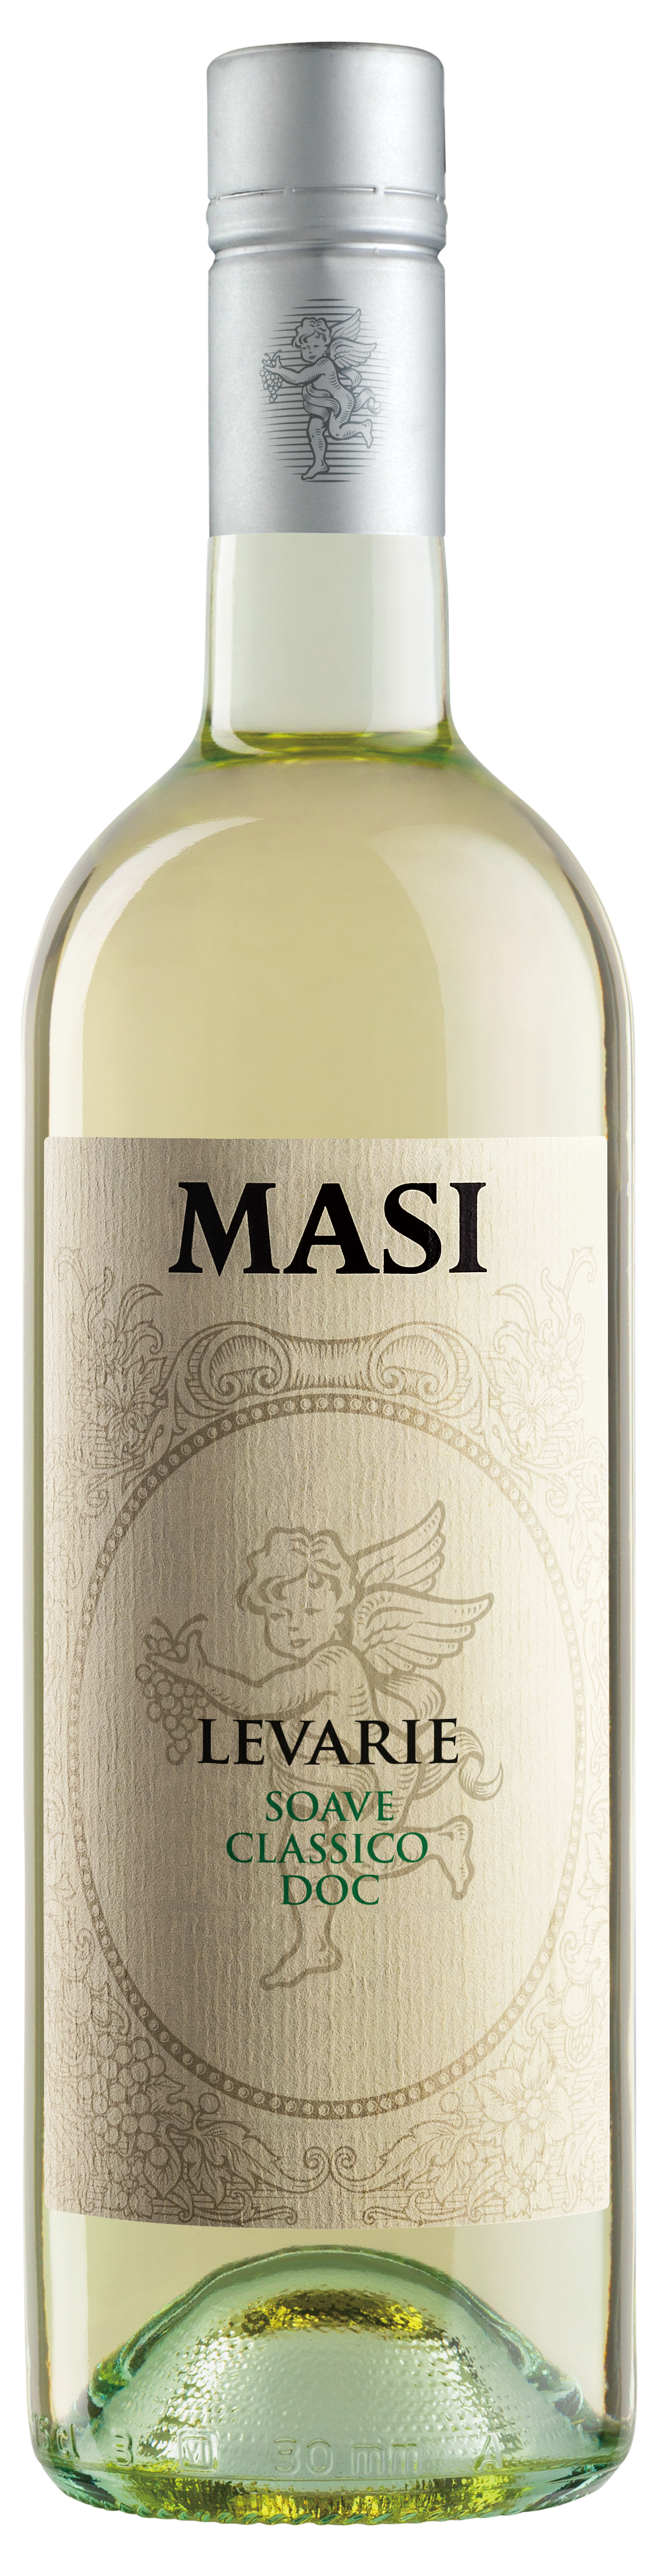 Levarie Soave Classico レヴァリエ ソアーヴェ クラシコ